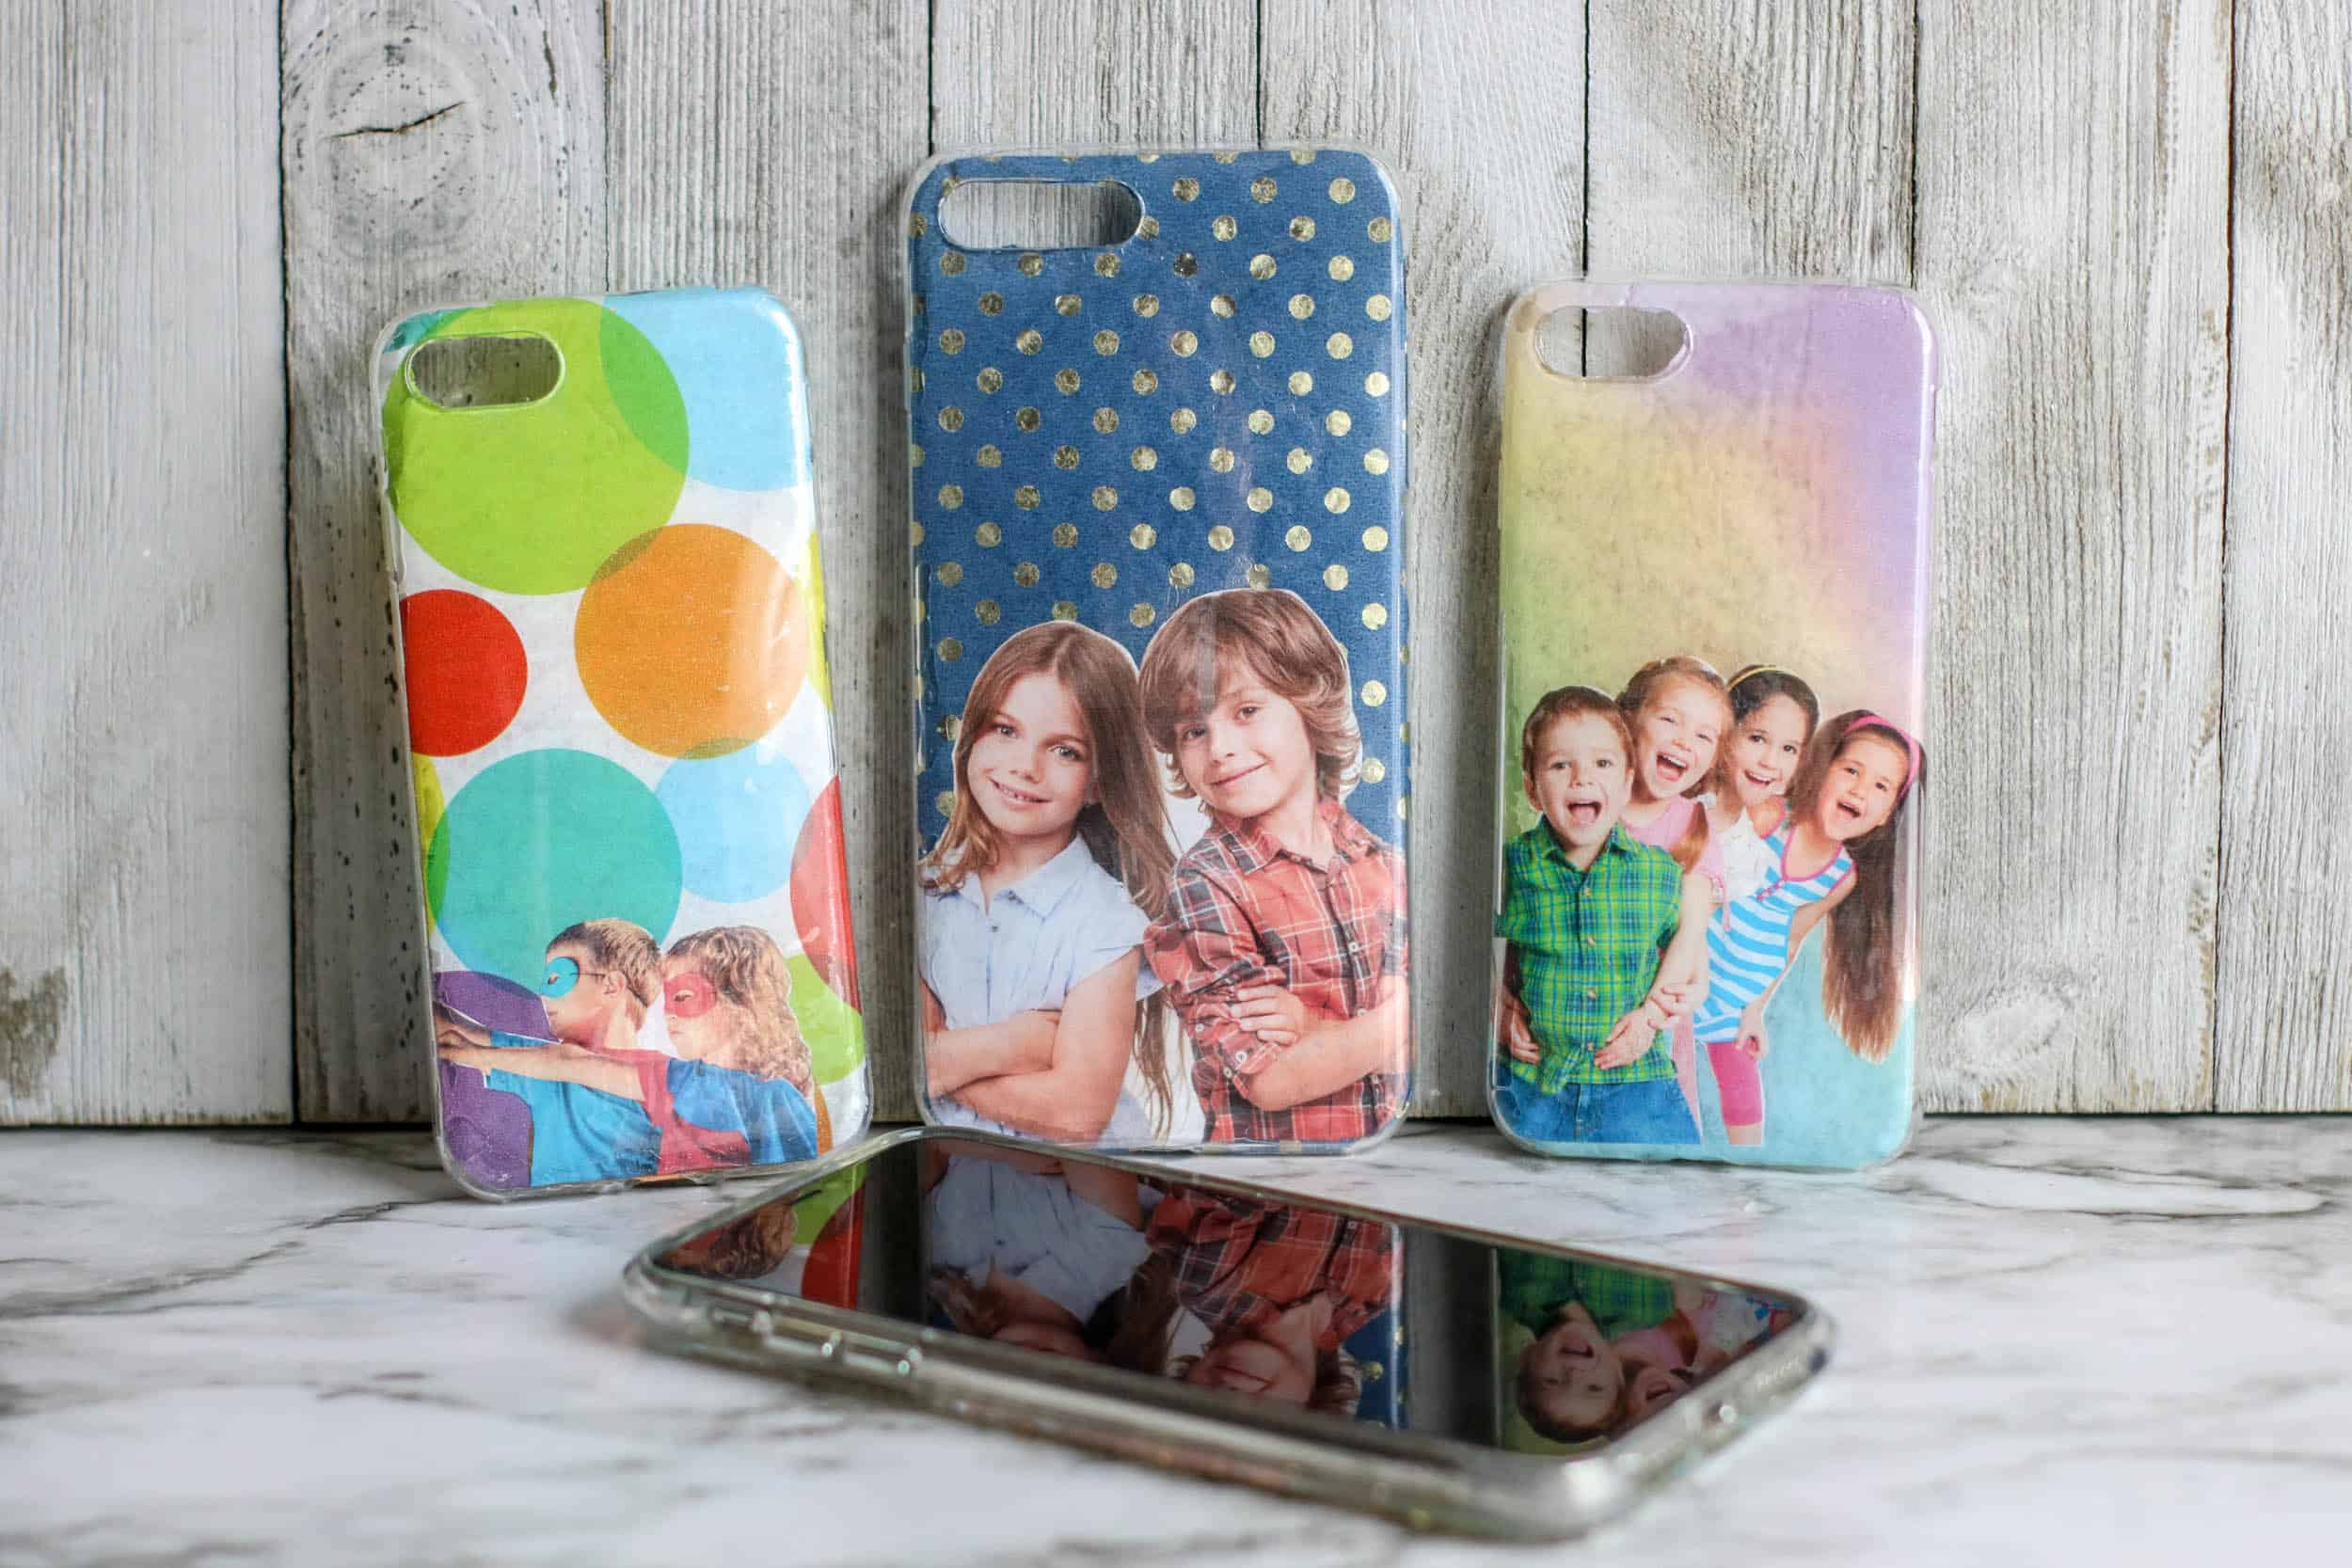 DIY: how to make personalized cell phone cases - Hispana Global